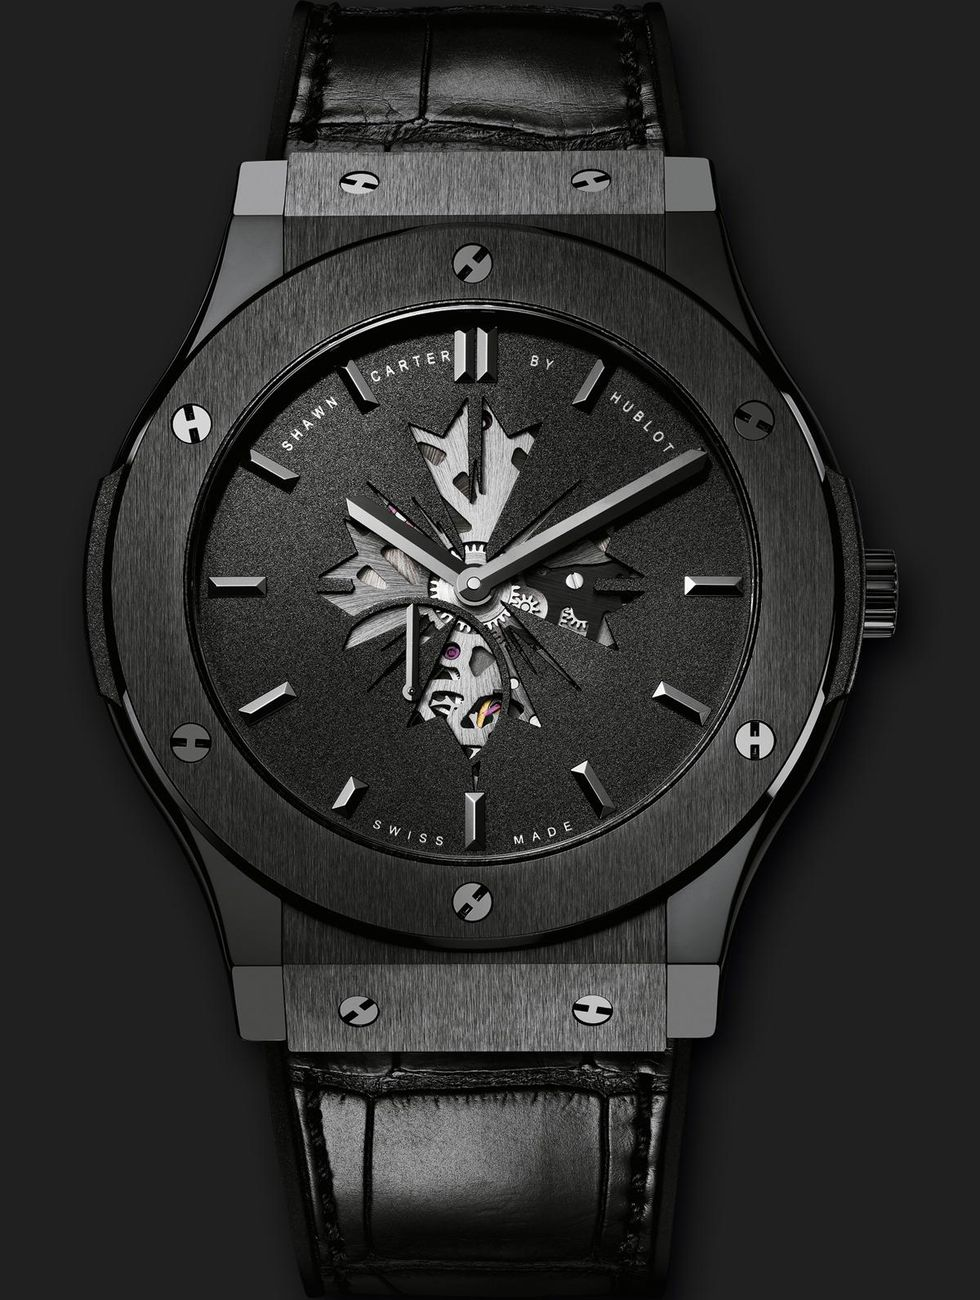 hublot shawn carter.jpg